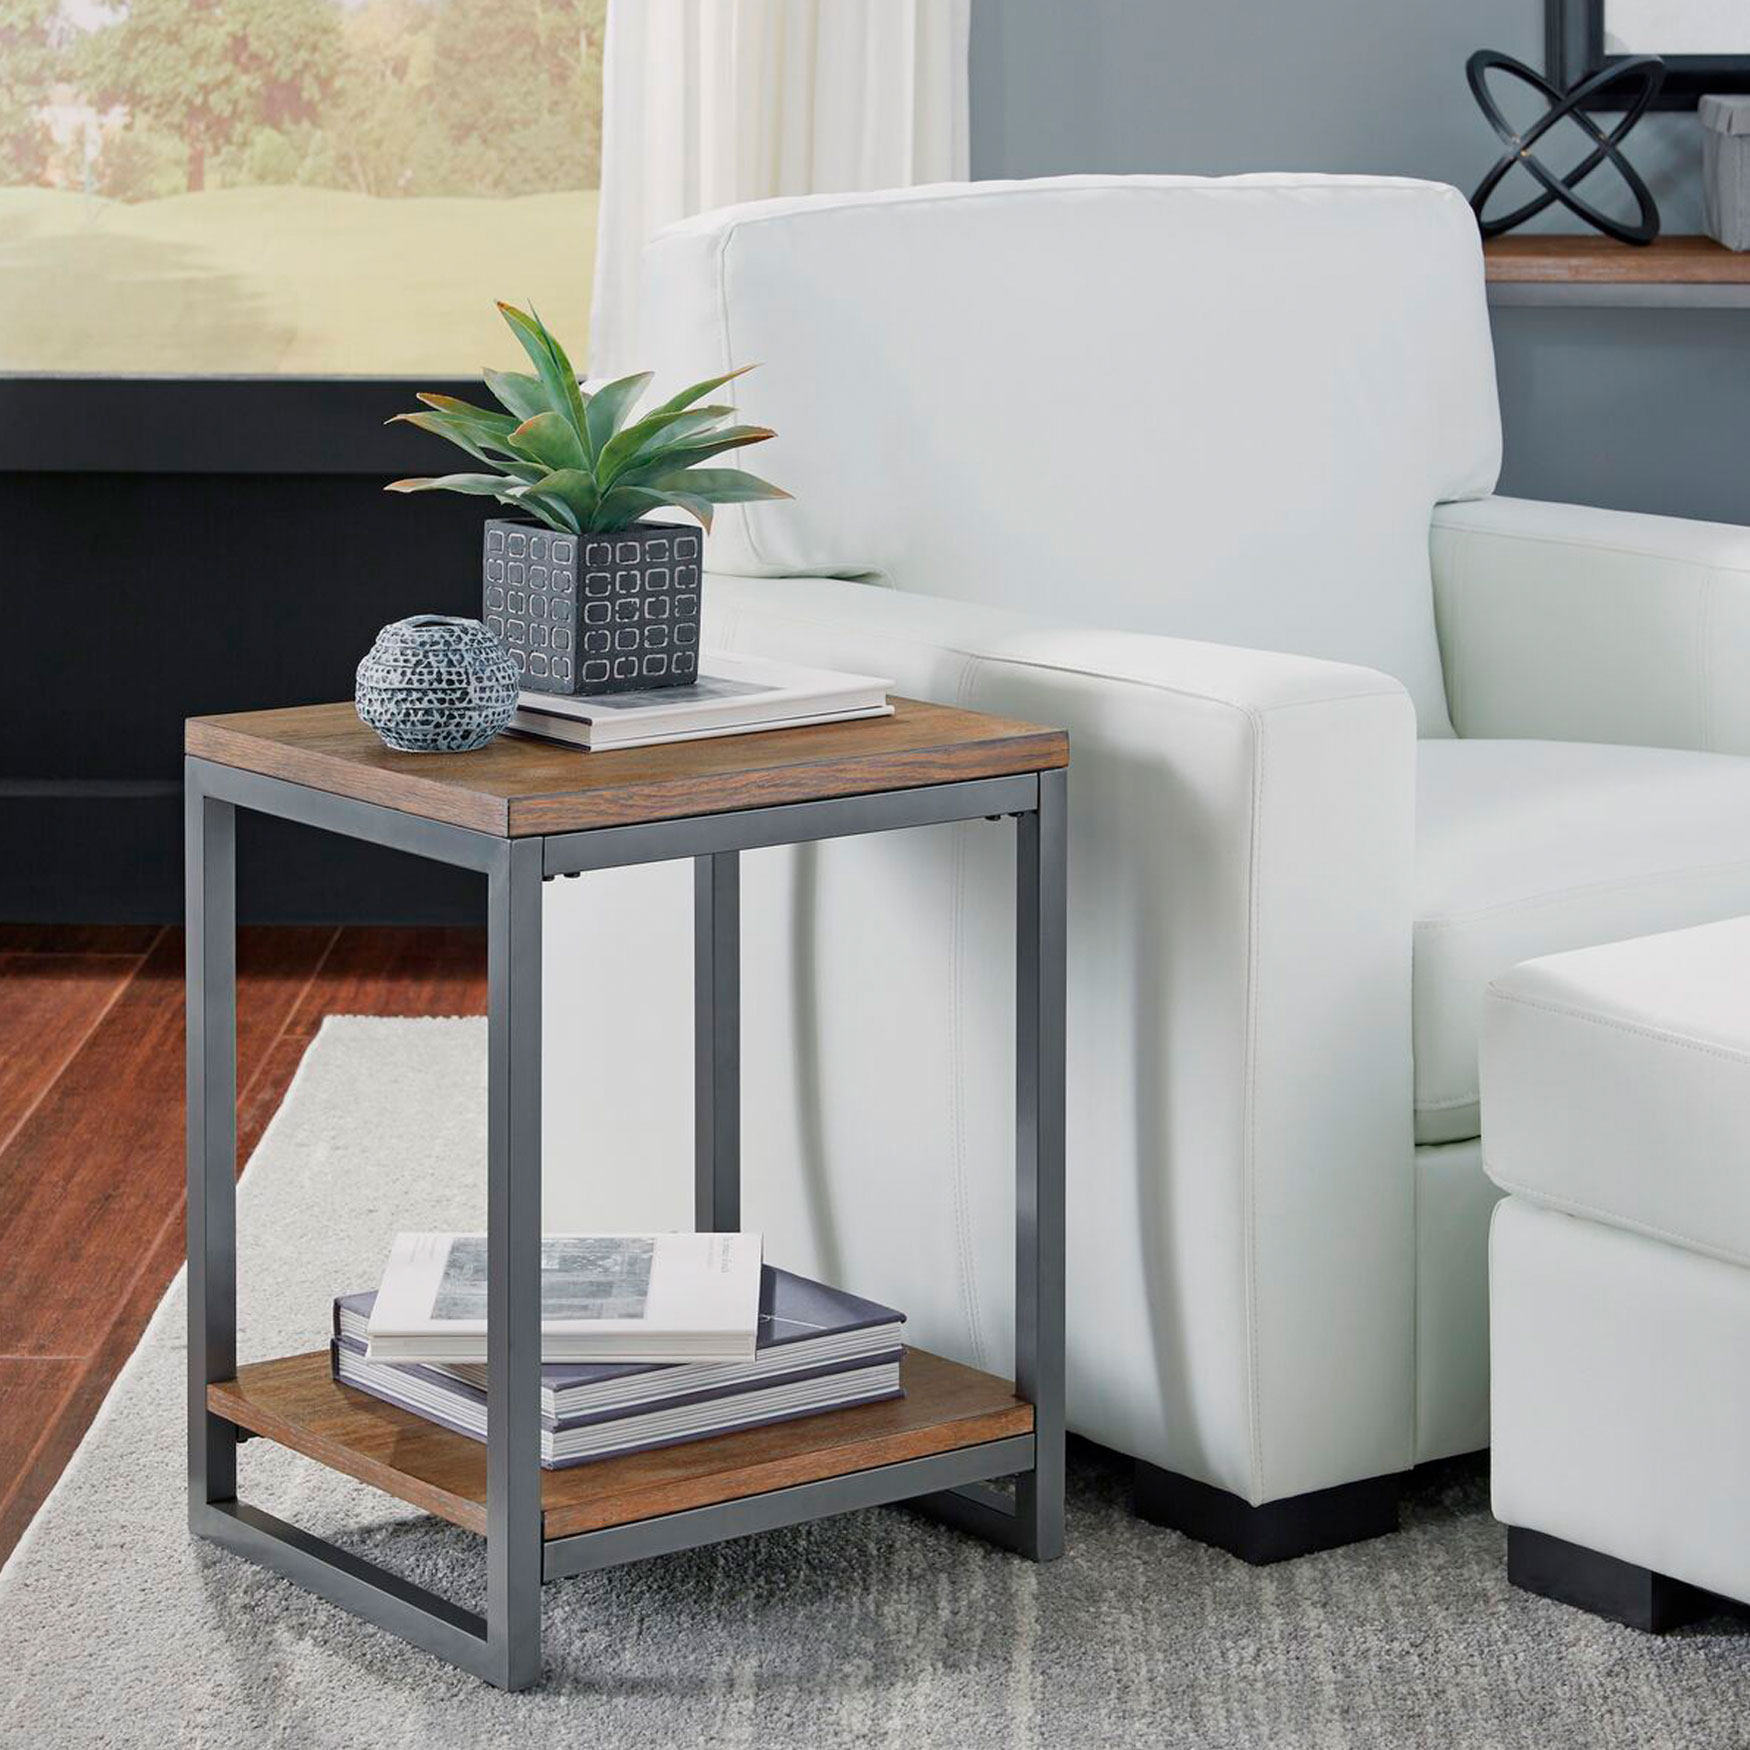 Barnside Metro End Table, GRAY